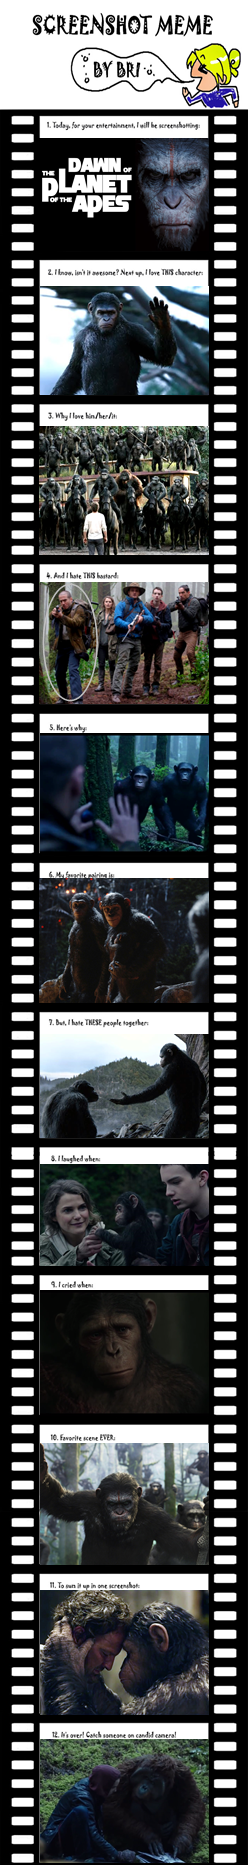 Dawn of the Planet of the Apes meme by cari28ch3